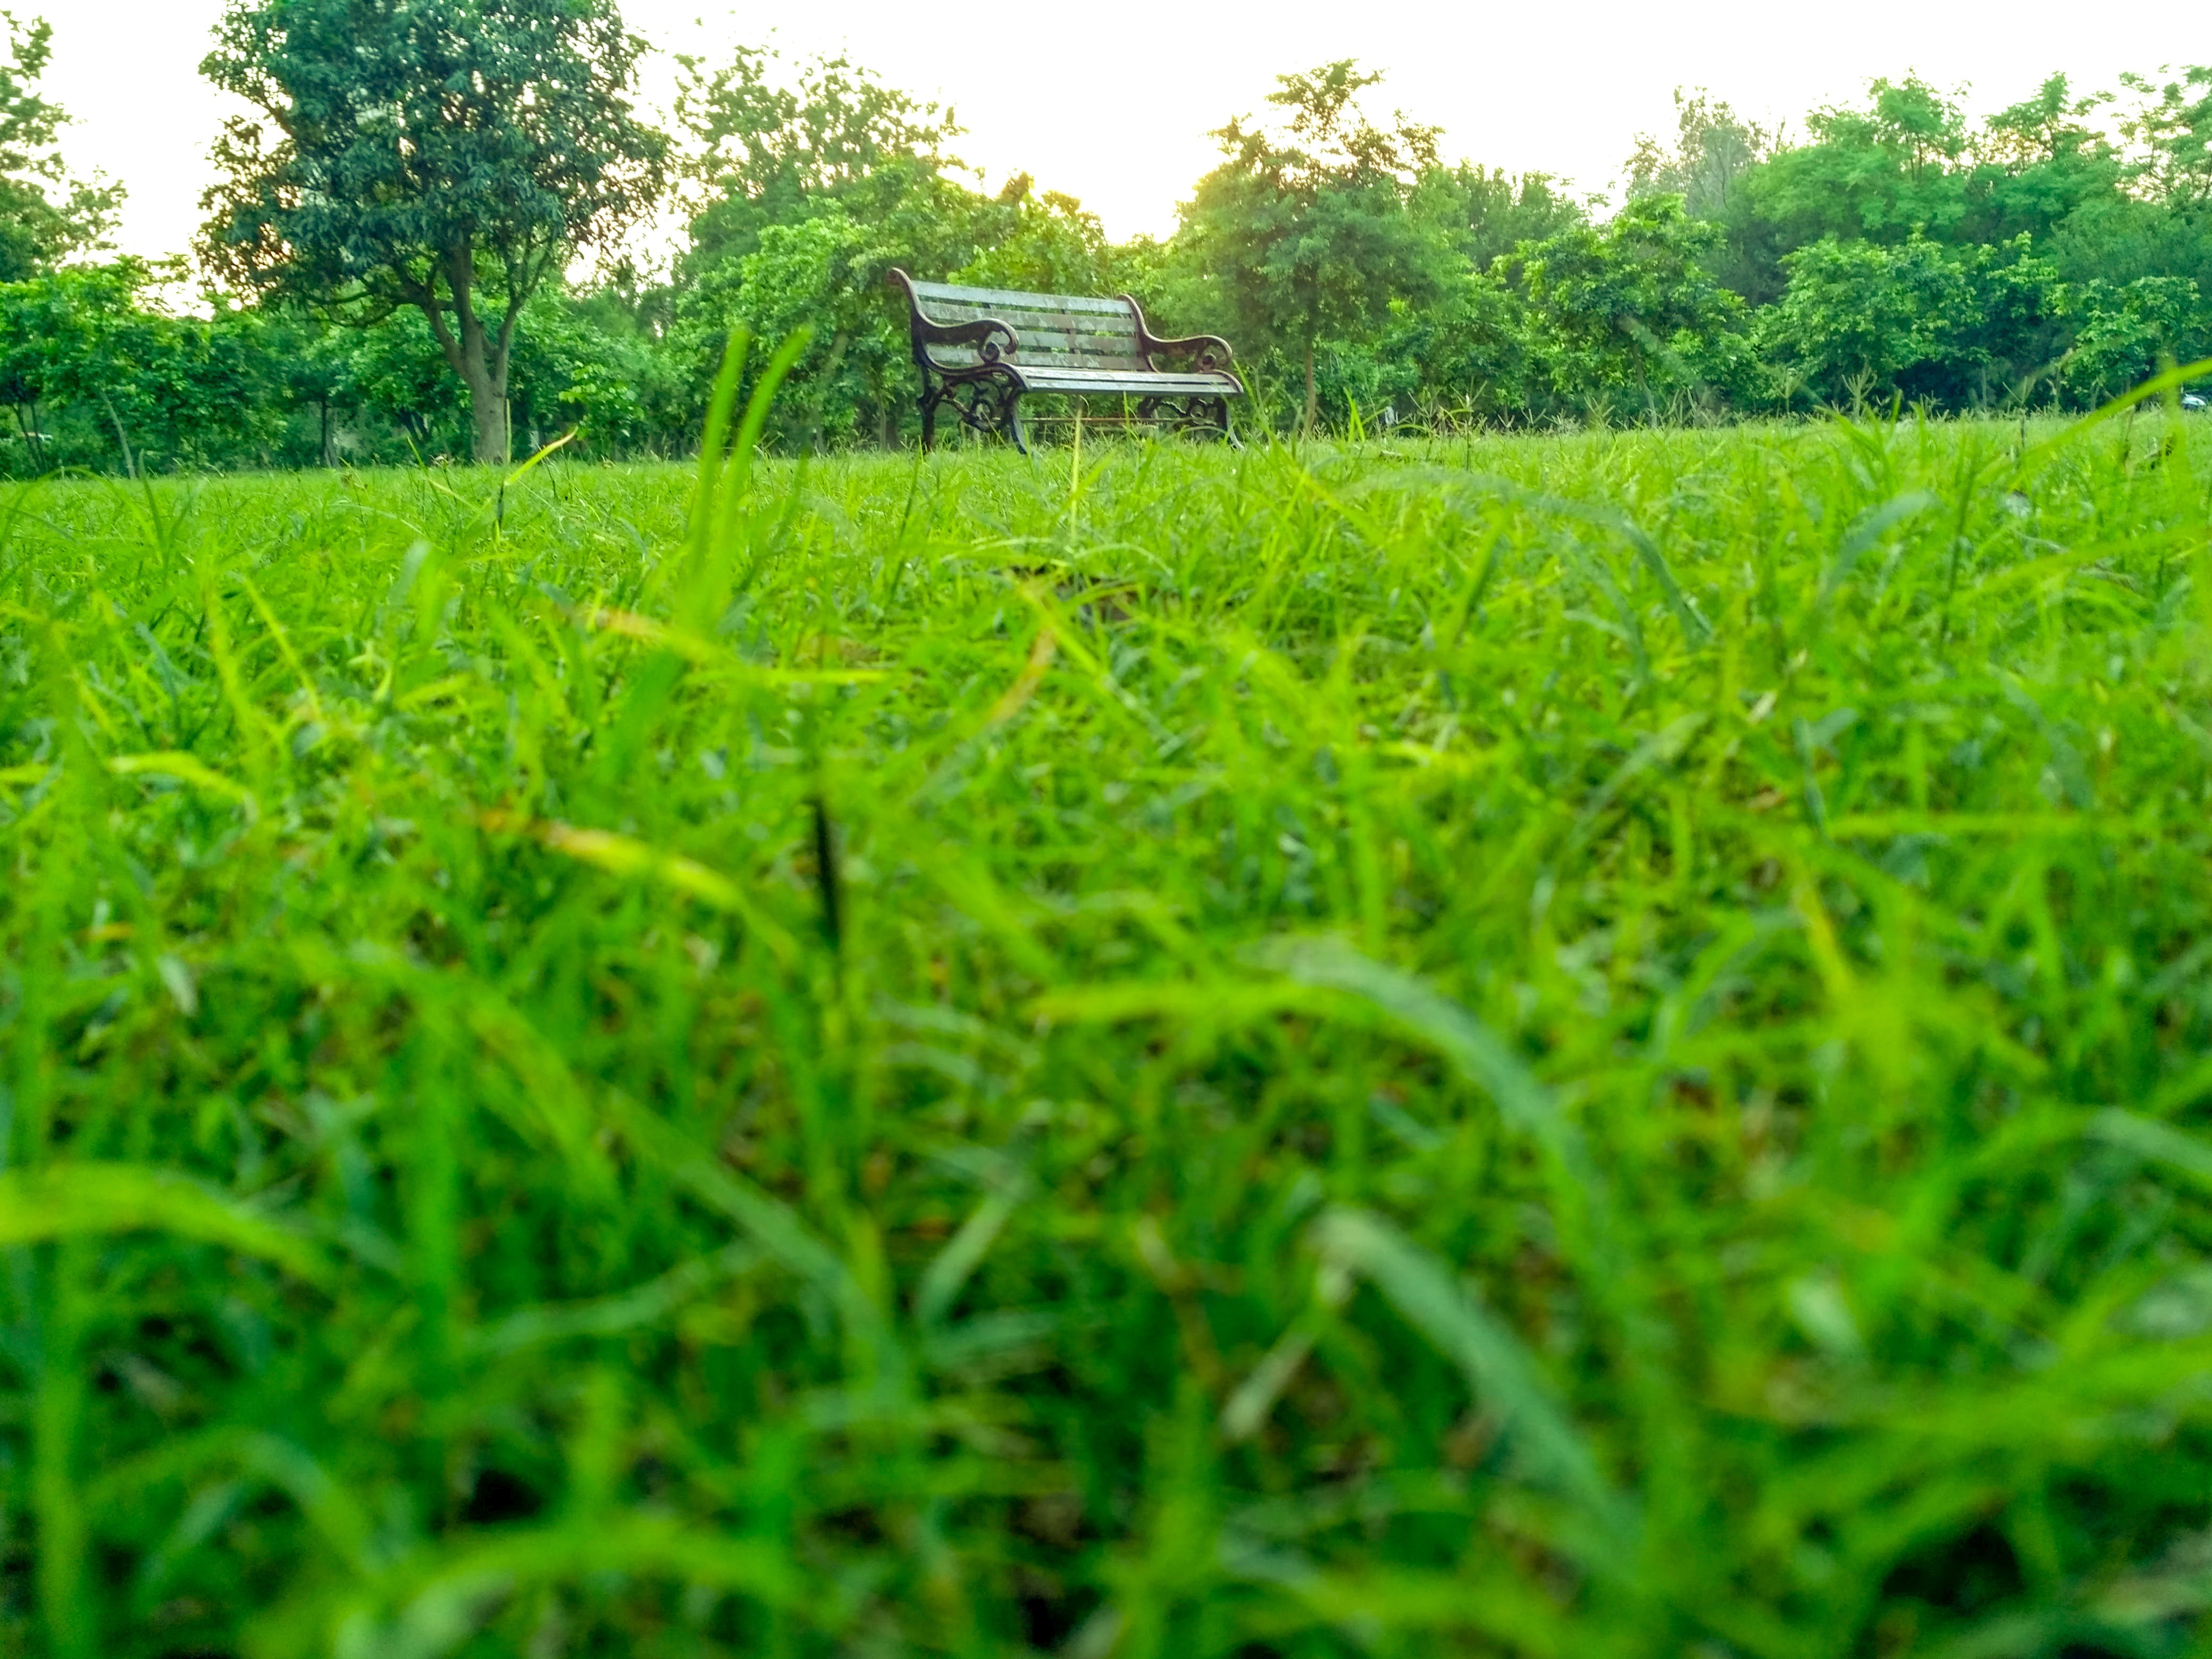 Free stock photo of #grass #banch #tablet #evening #sunset #light